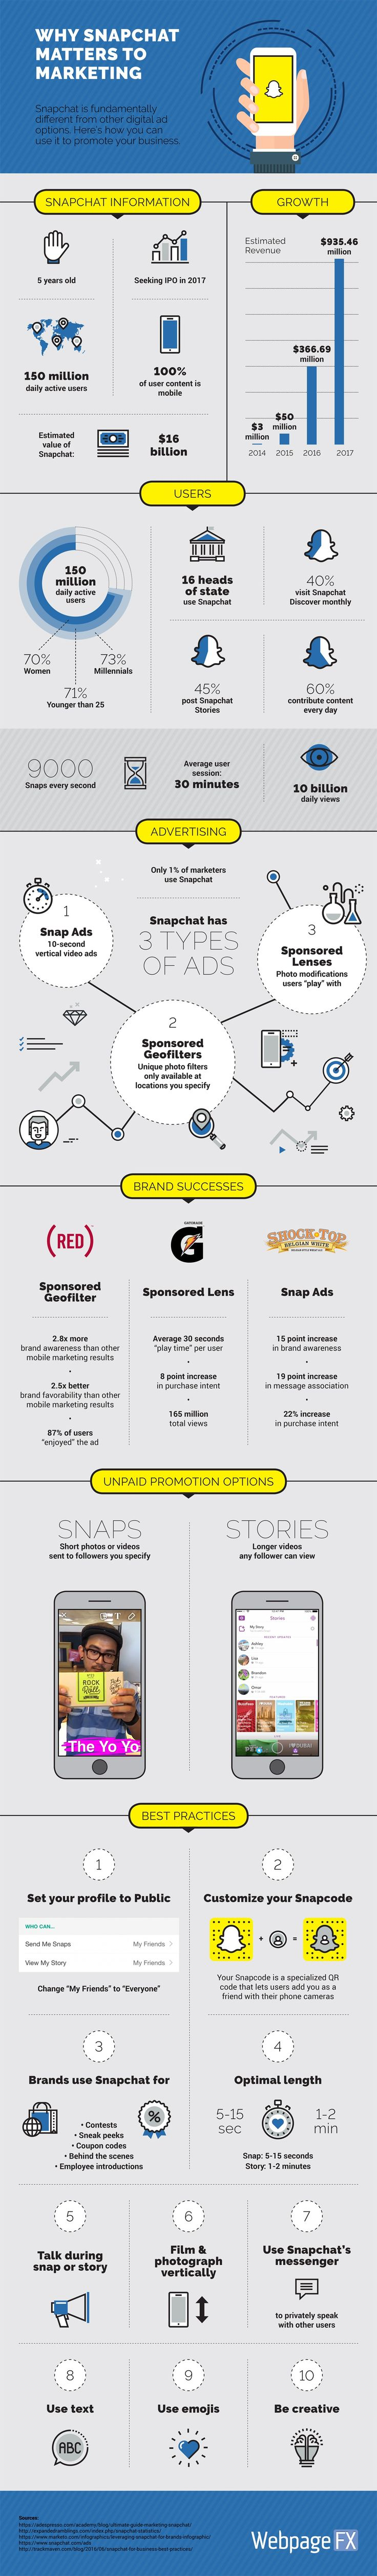 Why Snapchat Matters to Marketing [Infographic] | Social Media Today